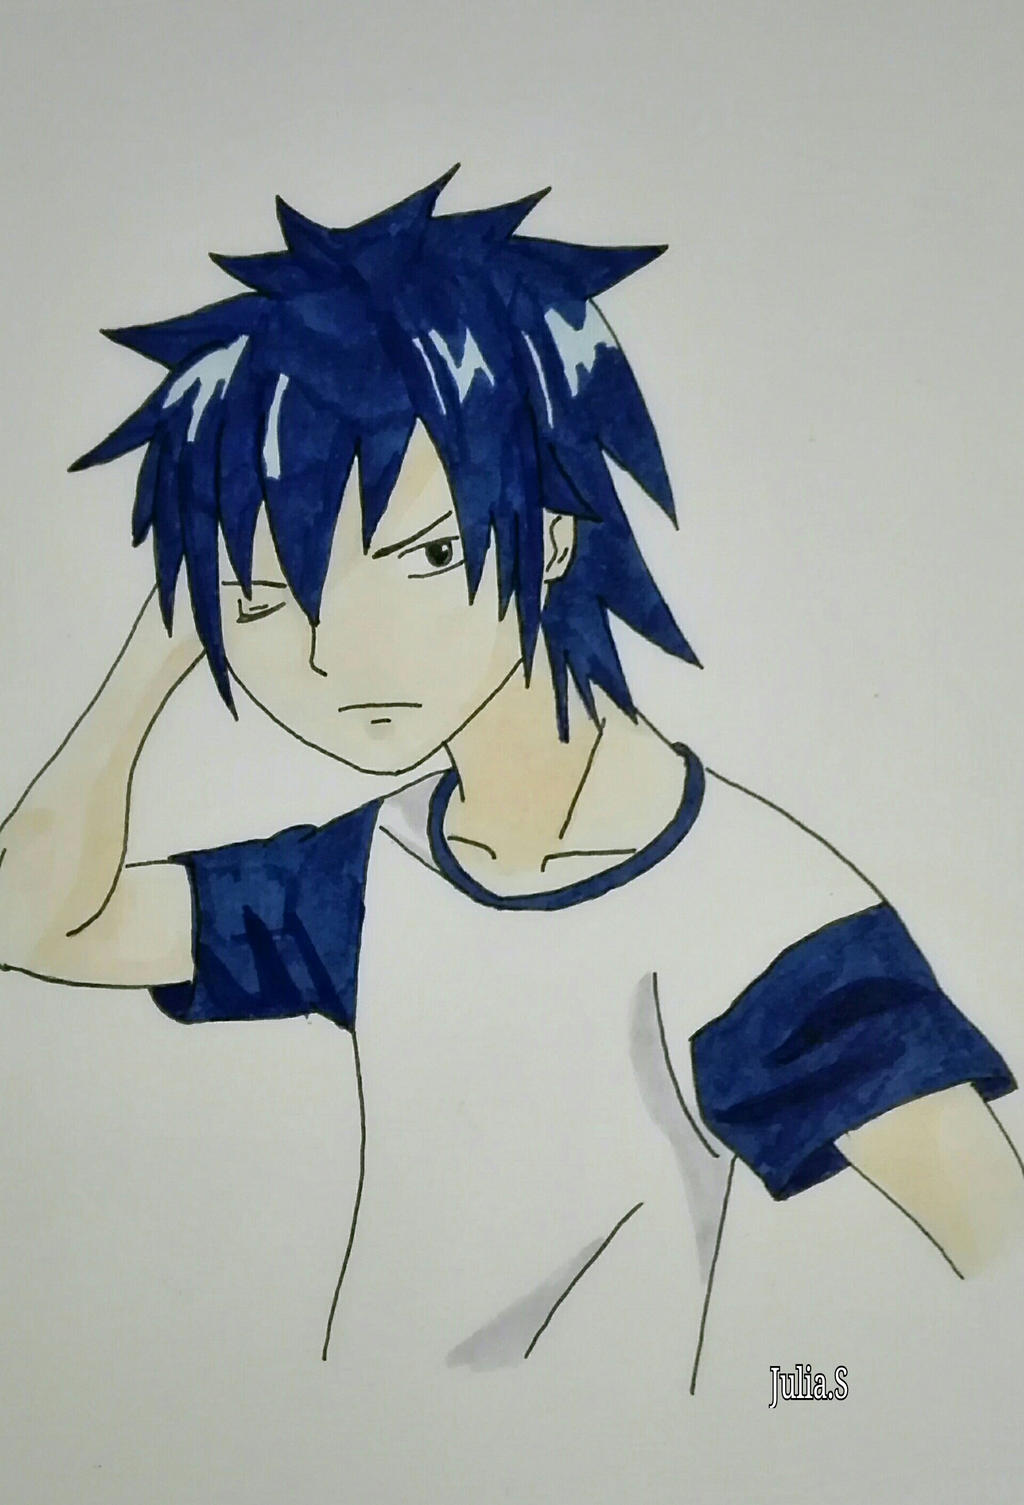 Gray Fullbuster - Fairy Tail by goldfinch92 on DeviantArt